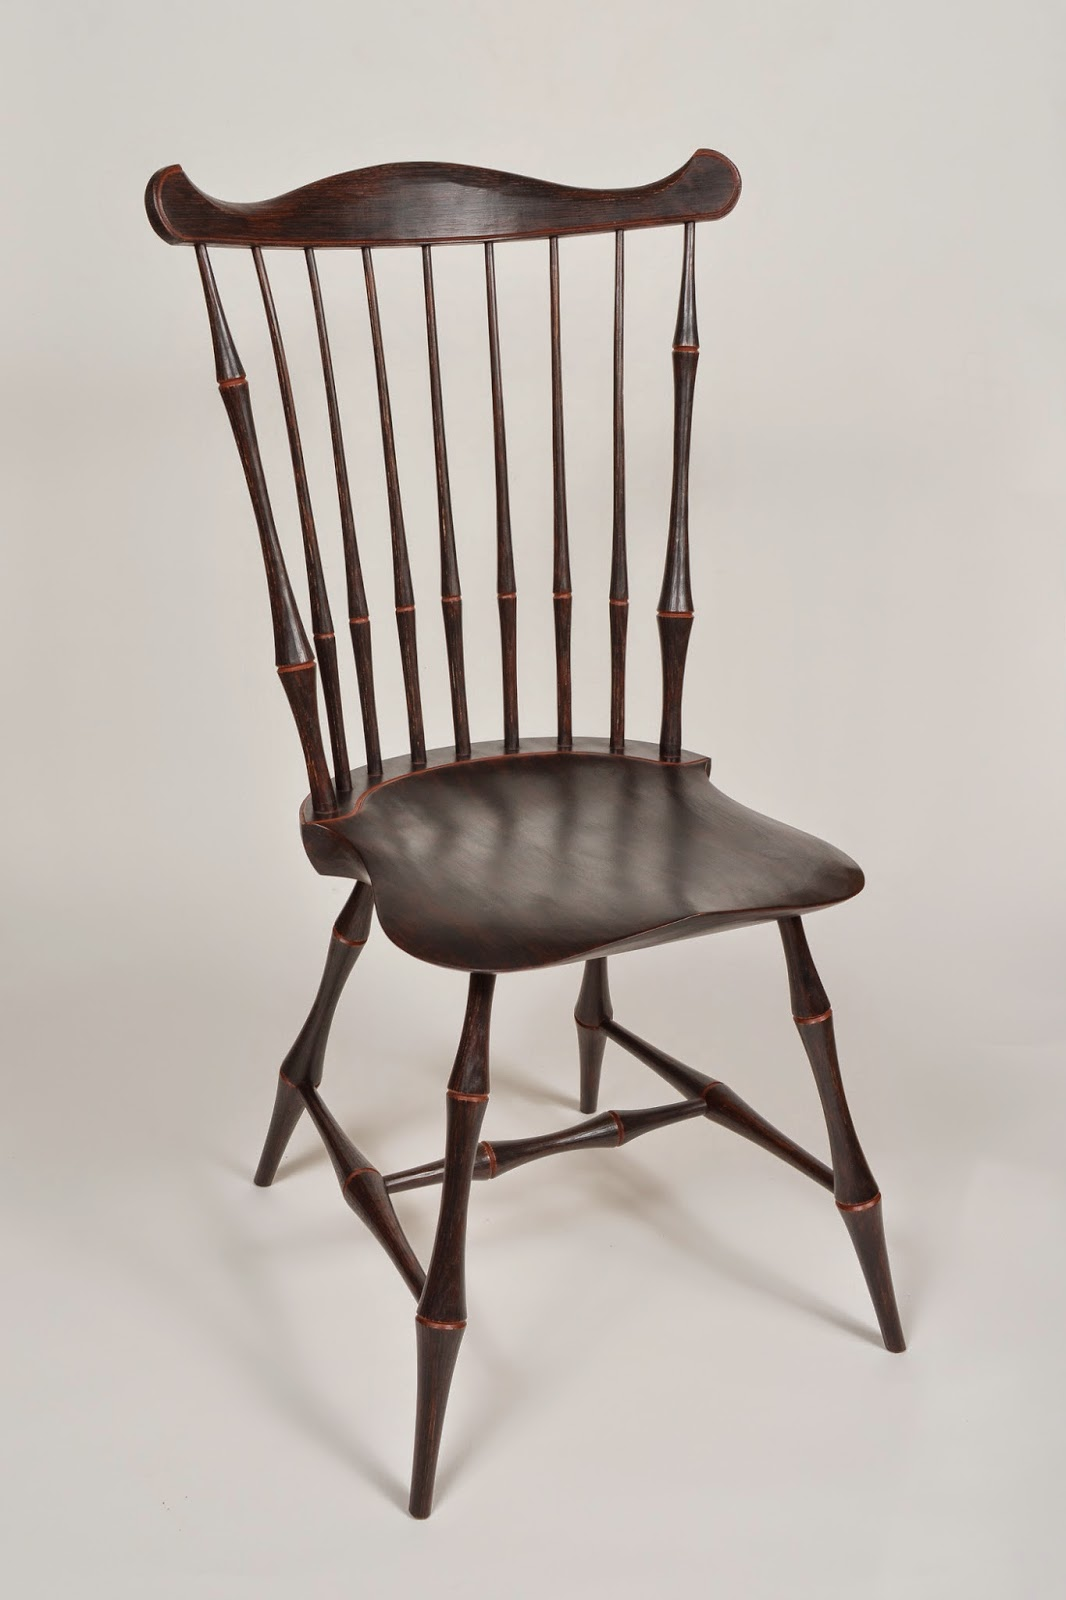 The Double Bobbin Turnings Make The Construction Of The Chair Fit A More  Modern Home Interior As Well As Minimize The High Level Of Skill Needed To  Turn The ...